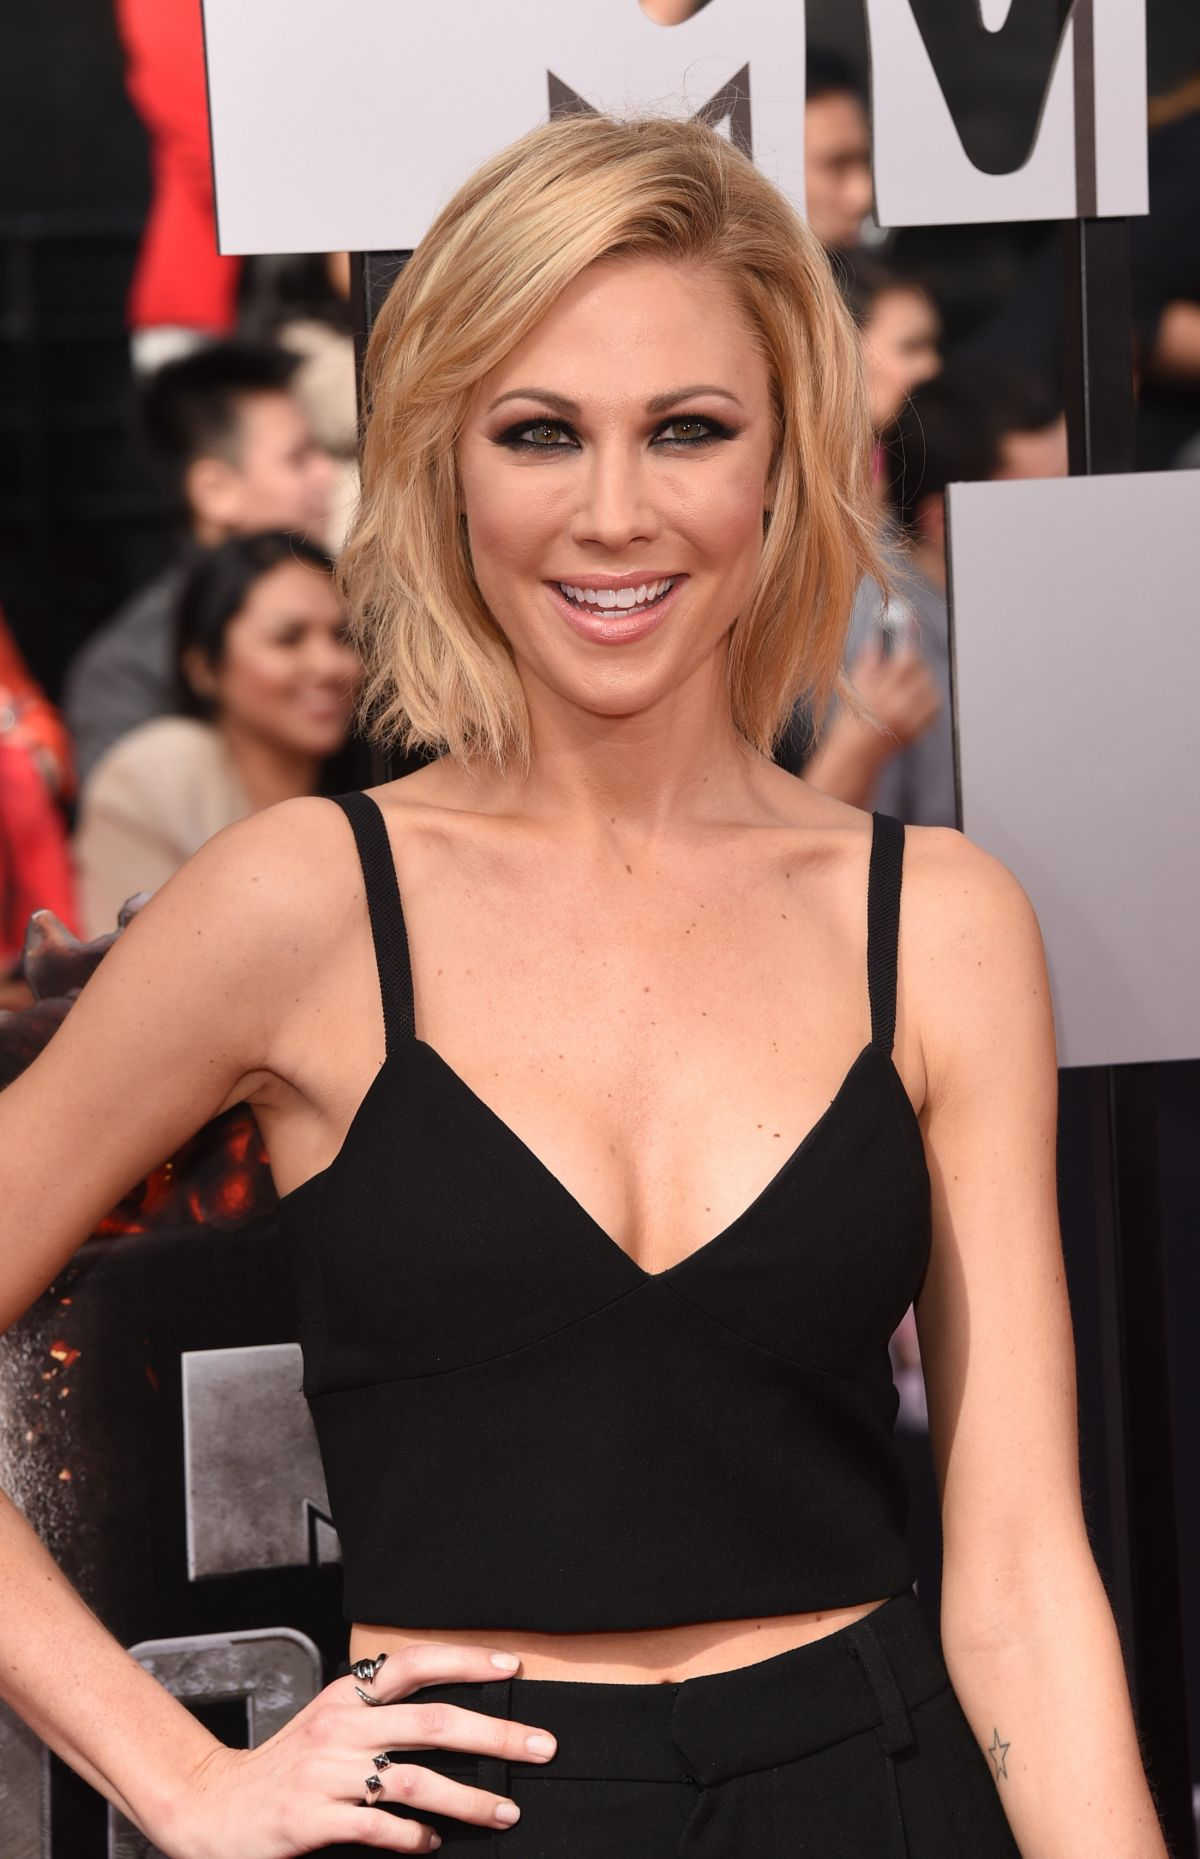 DESI LYDIC at MTV Movie Awards 2014 in Los Angeles